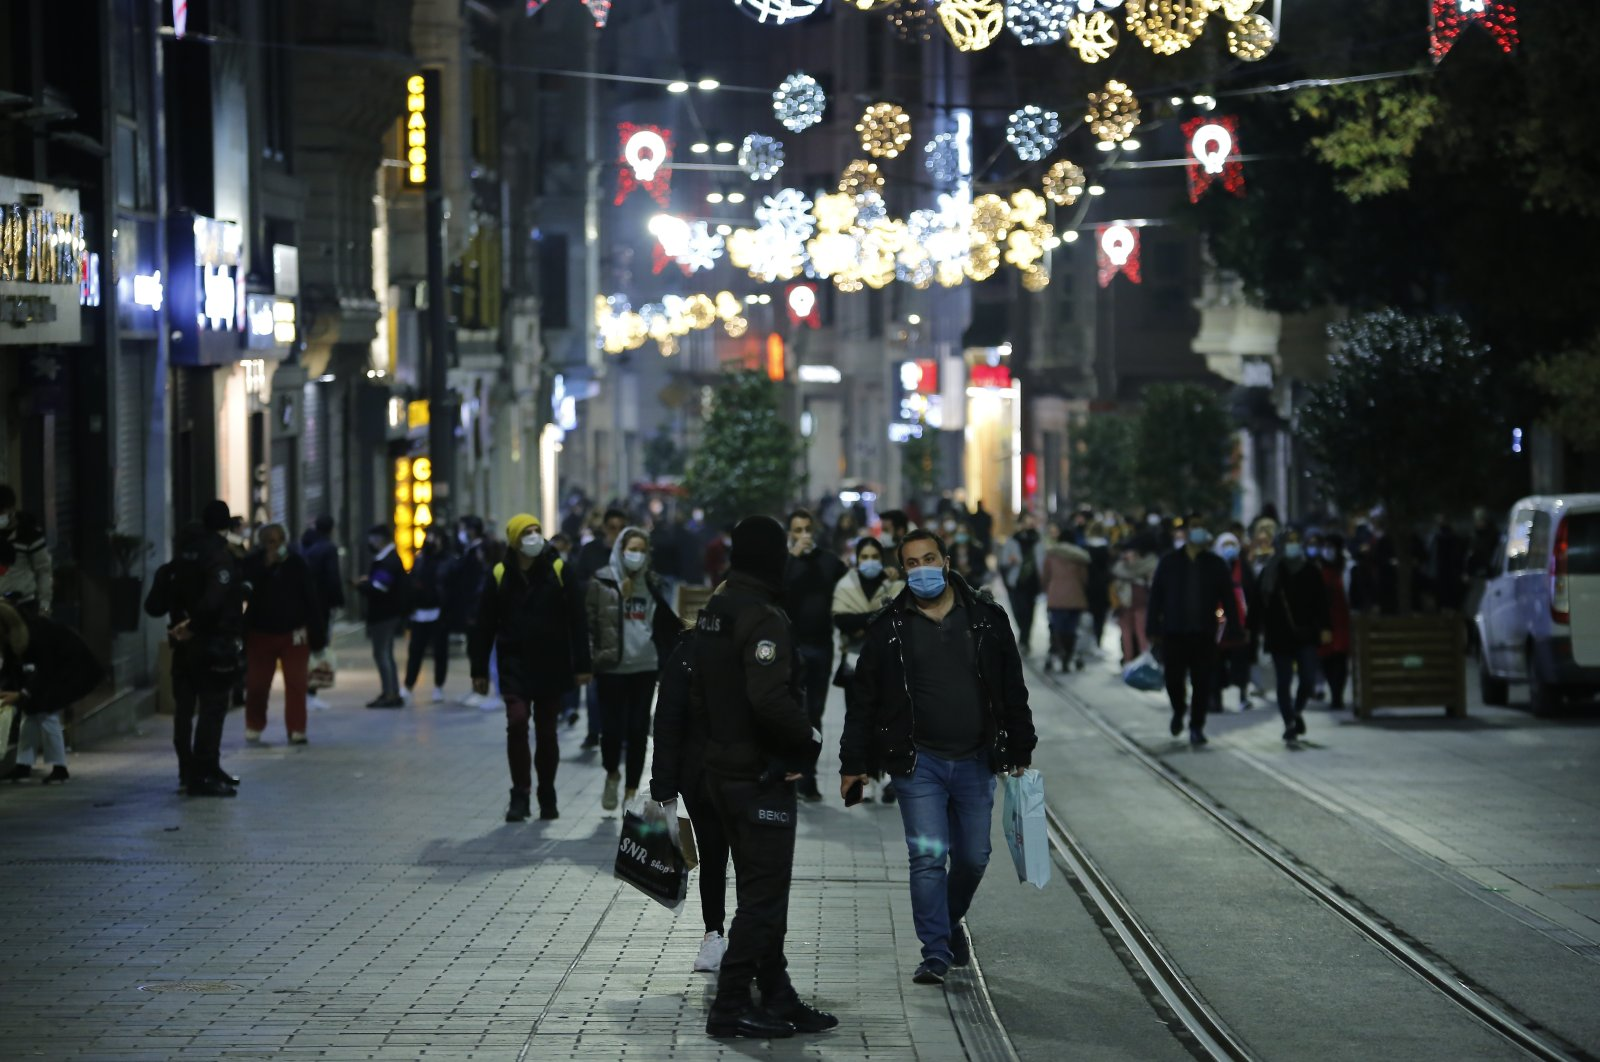 People wearing protective masks walk on Istiklal Avenue before the start of a weekend curfew, in Istanbul, Turkey, Nov. 29, 2020. (İHA PHOTO)